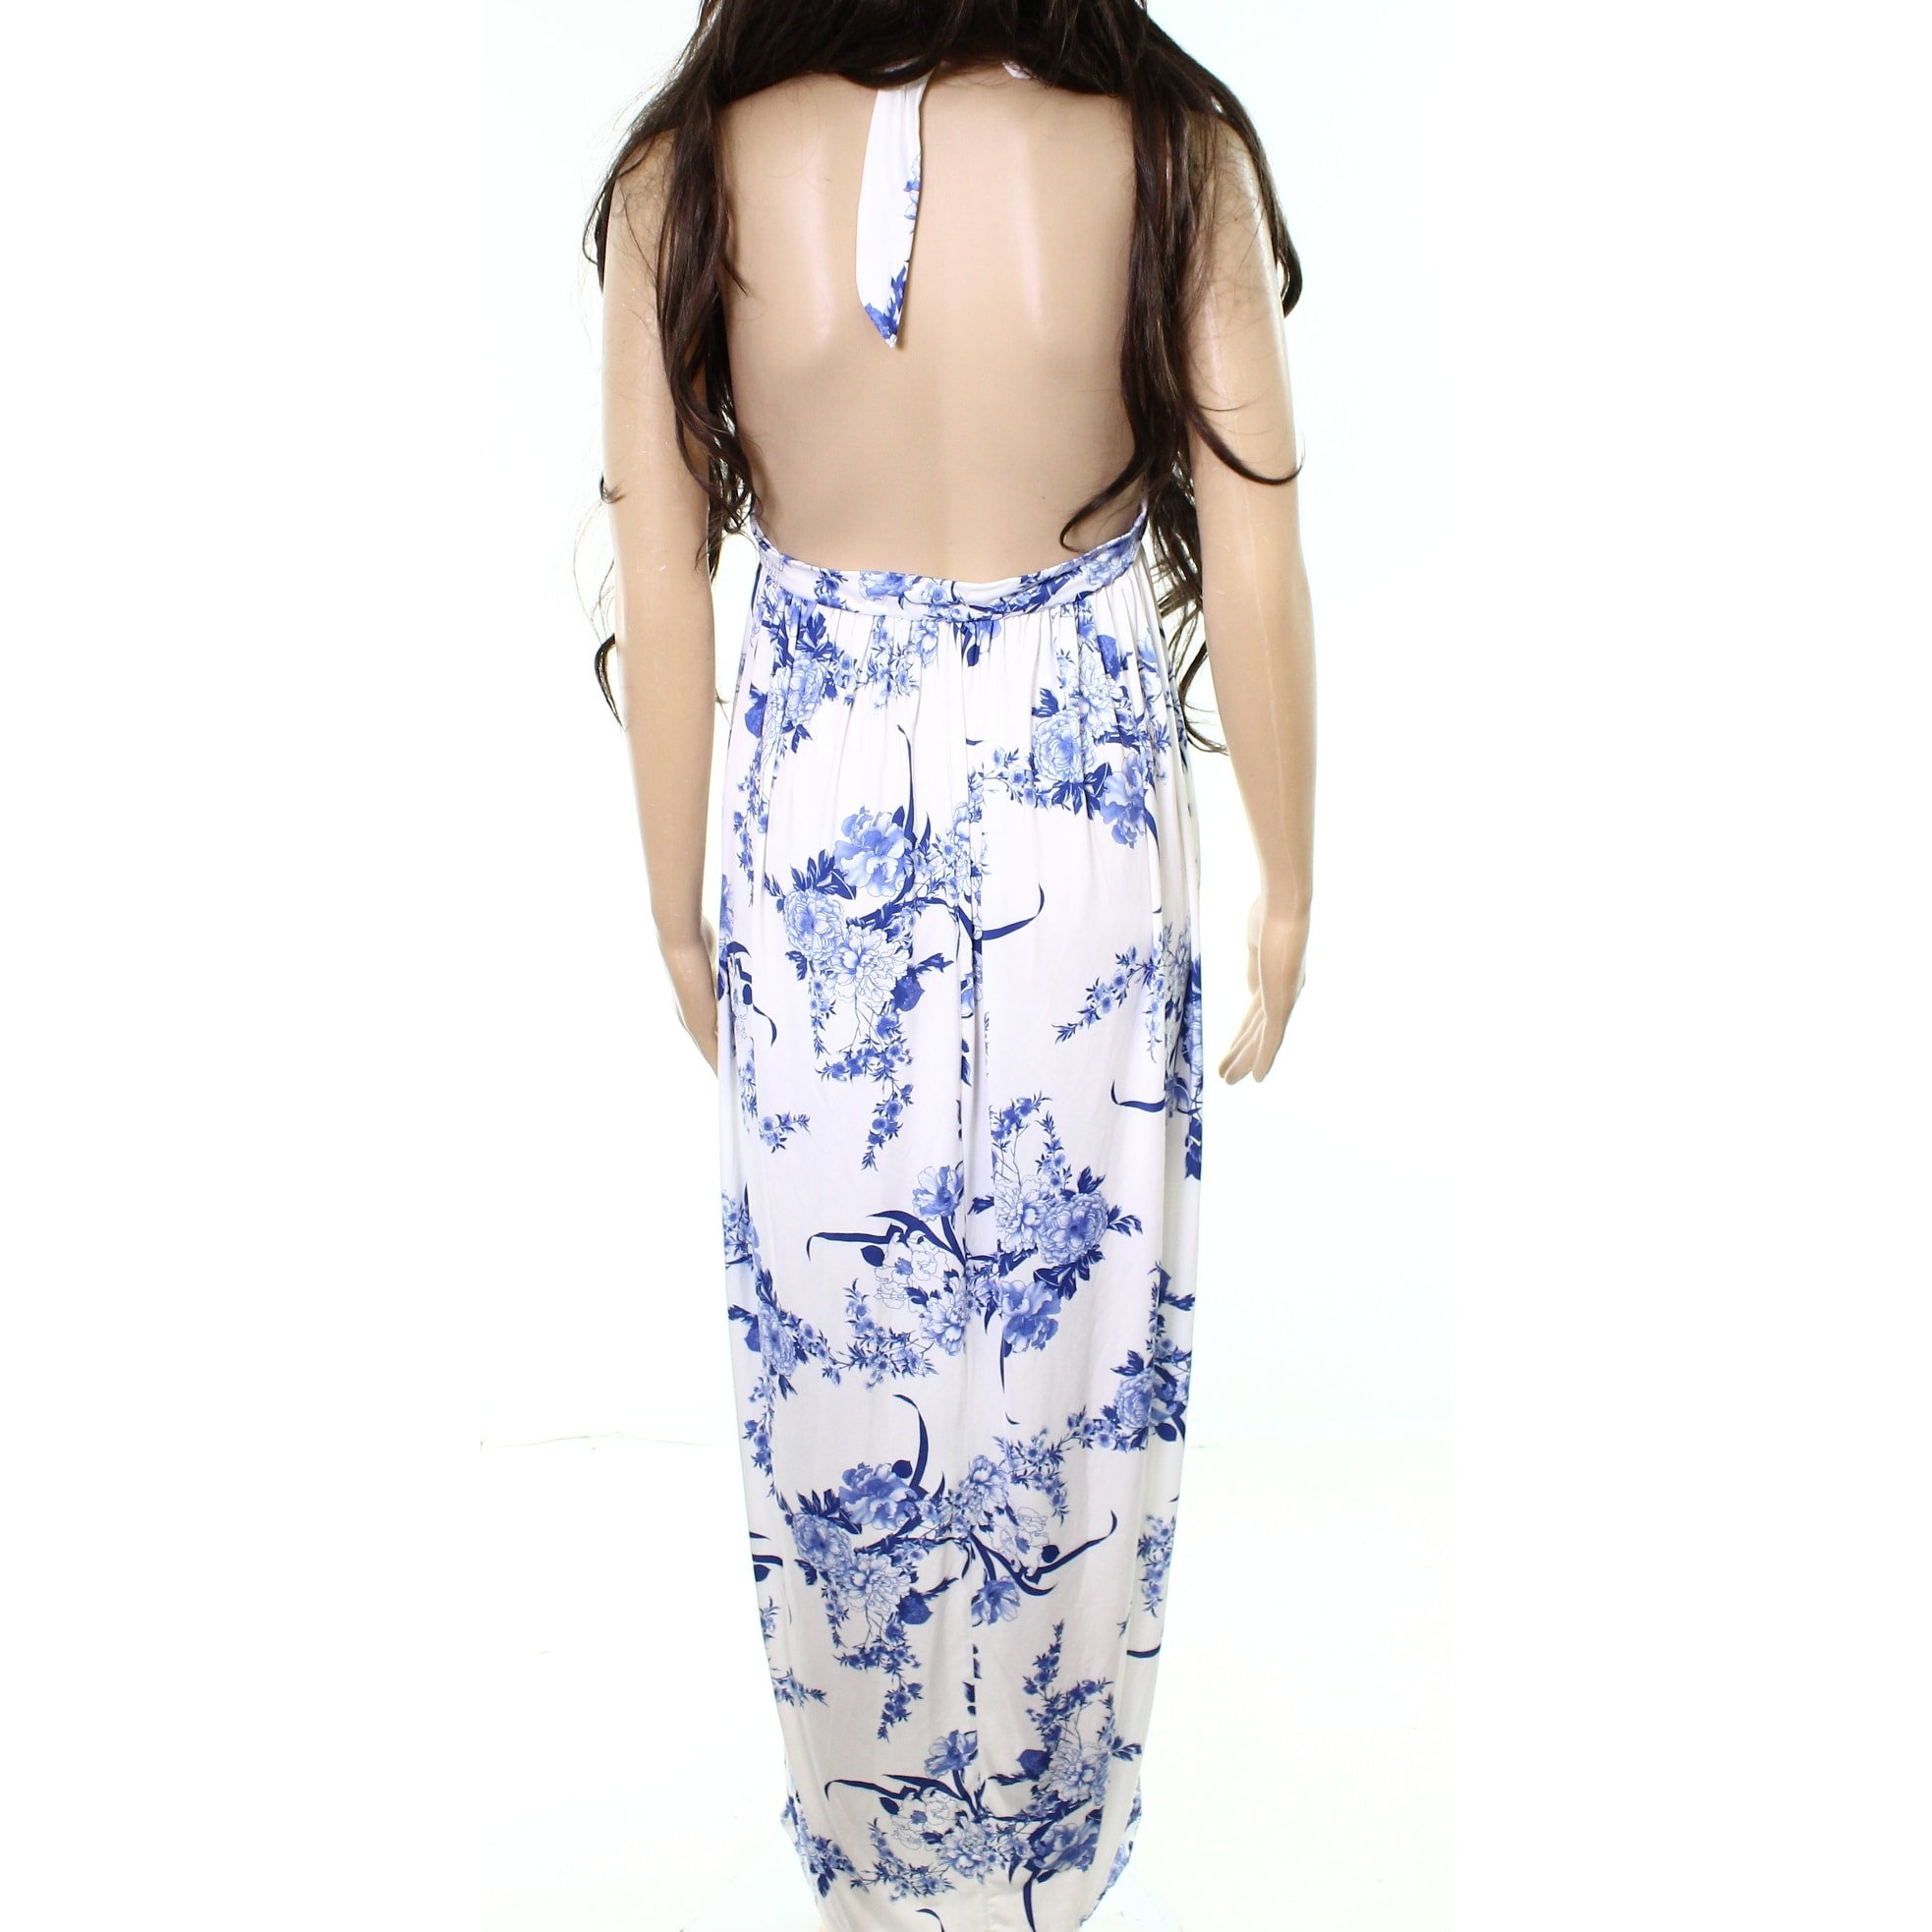 3fdd01d5f015 Shop Boohoo NEW Blue White Womens Size 10 Cutout Floral-Print Sheath Dress  - Free Shipping On Orders Over $45 - Overstock - 20858980